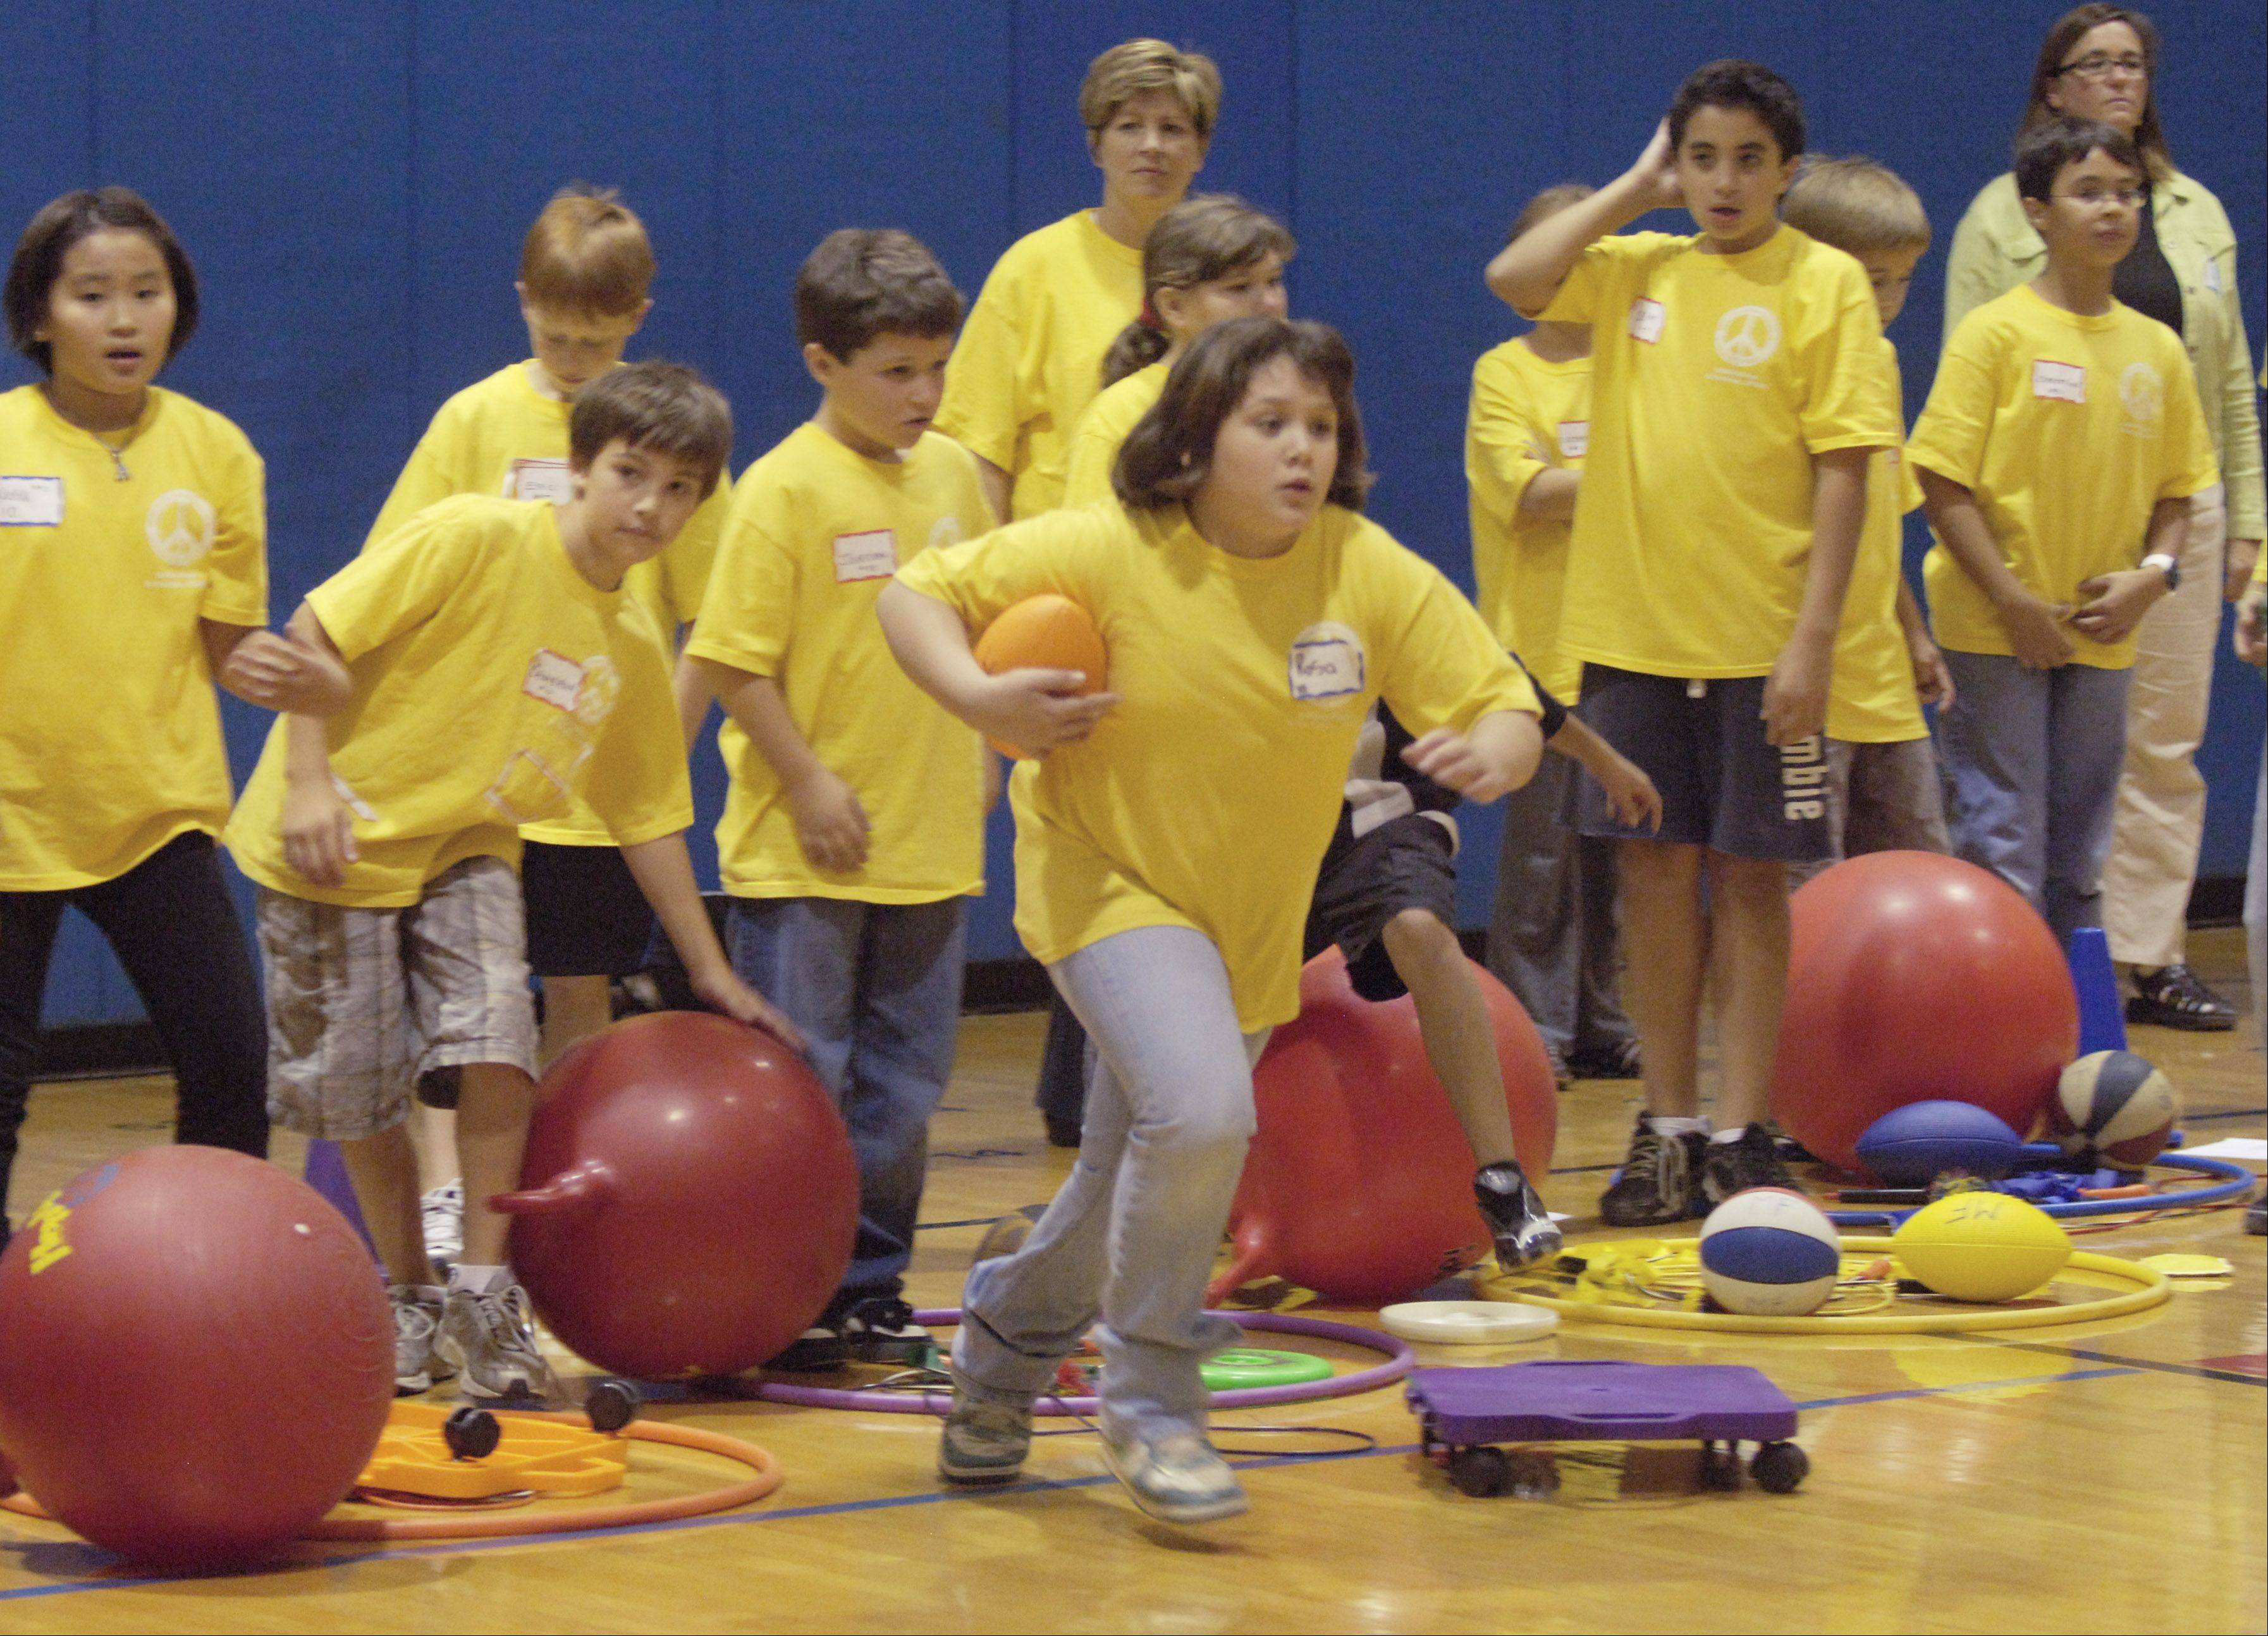 Fifth grade students from Indian Grove and Euclid elementary schools meet for games and fun at River Trails Middle School in Mount Prospect. The event was part of a parent-led effort in the fall of 2010 to dispel bitter feelings left by the controversy over grade-level centers.